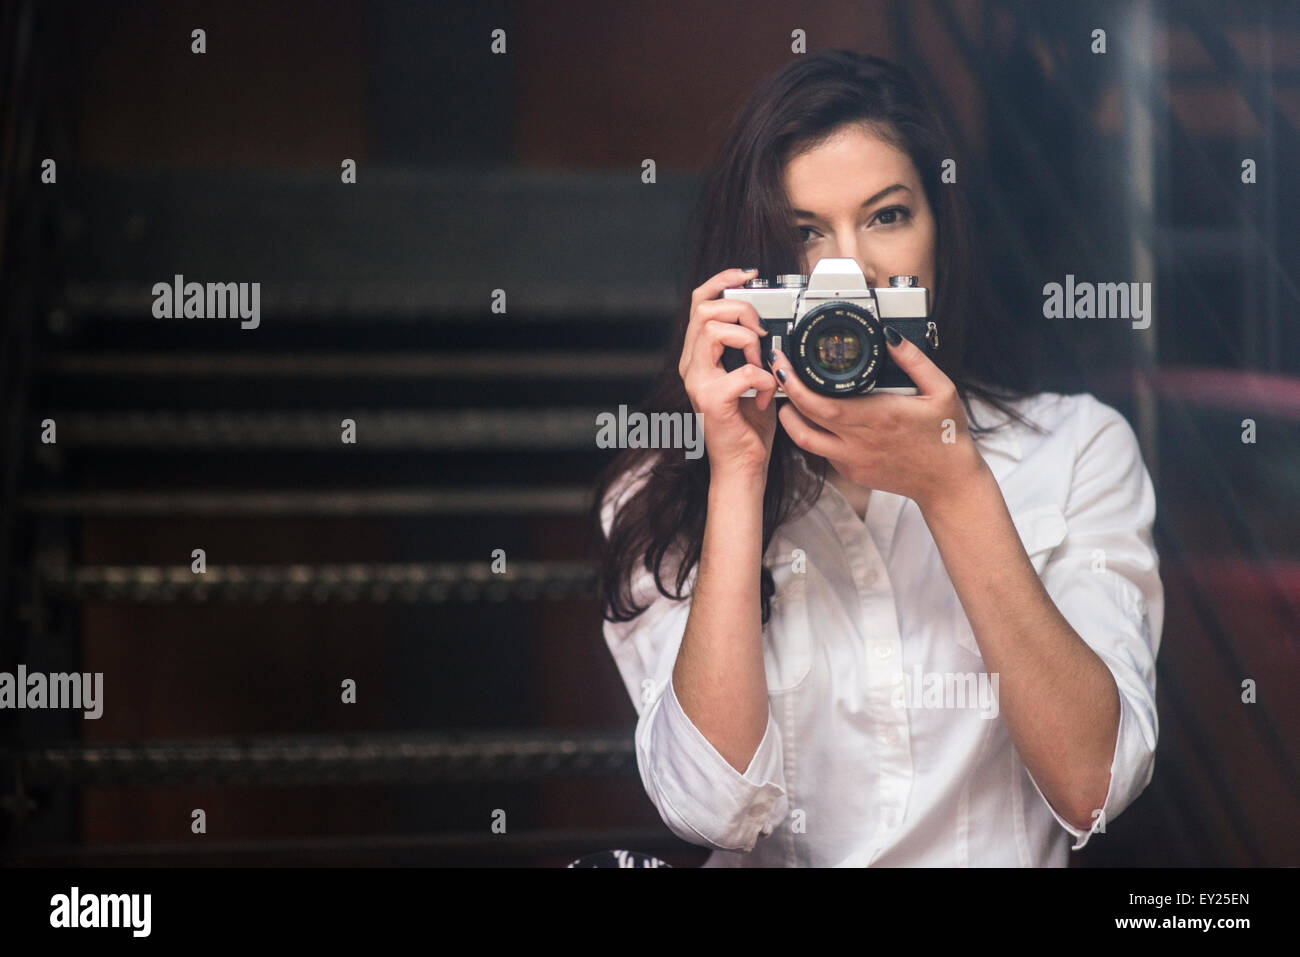 Young woman taking photograph with SLR camera - Stock Image